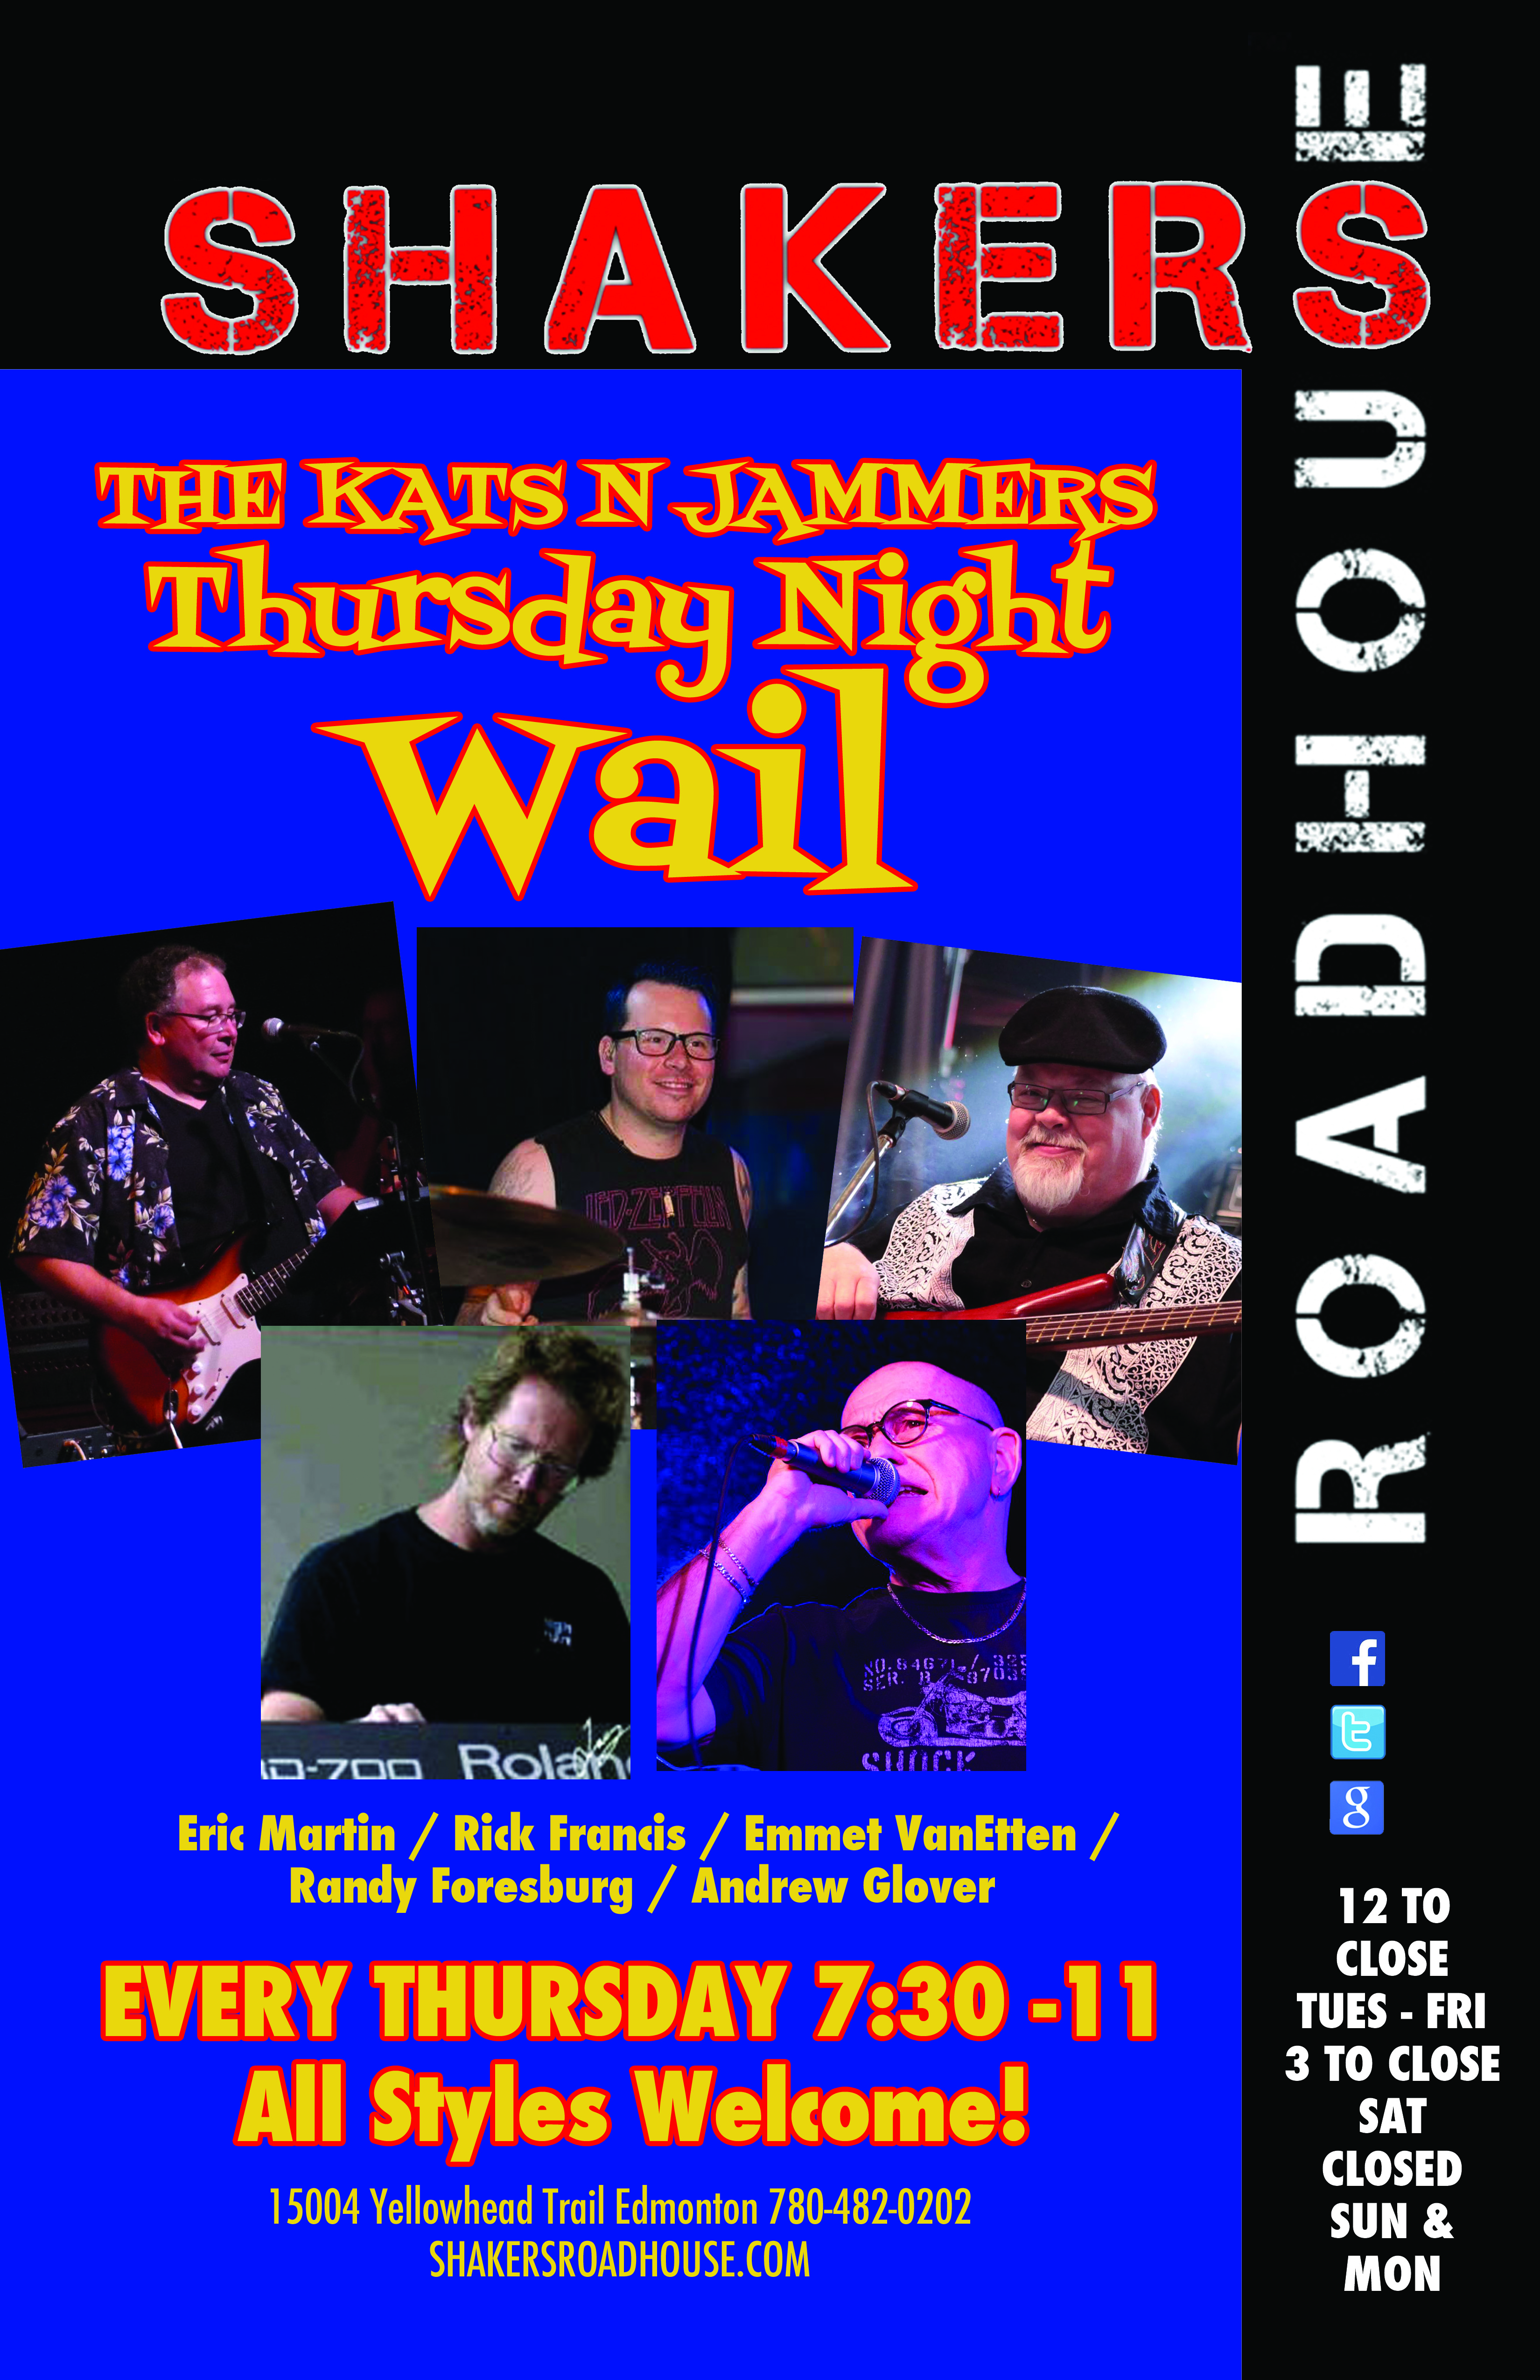 The Kats N Jammers Thursday Night Wail